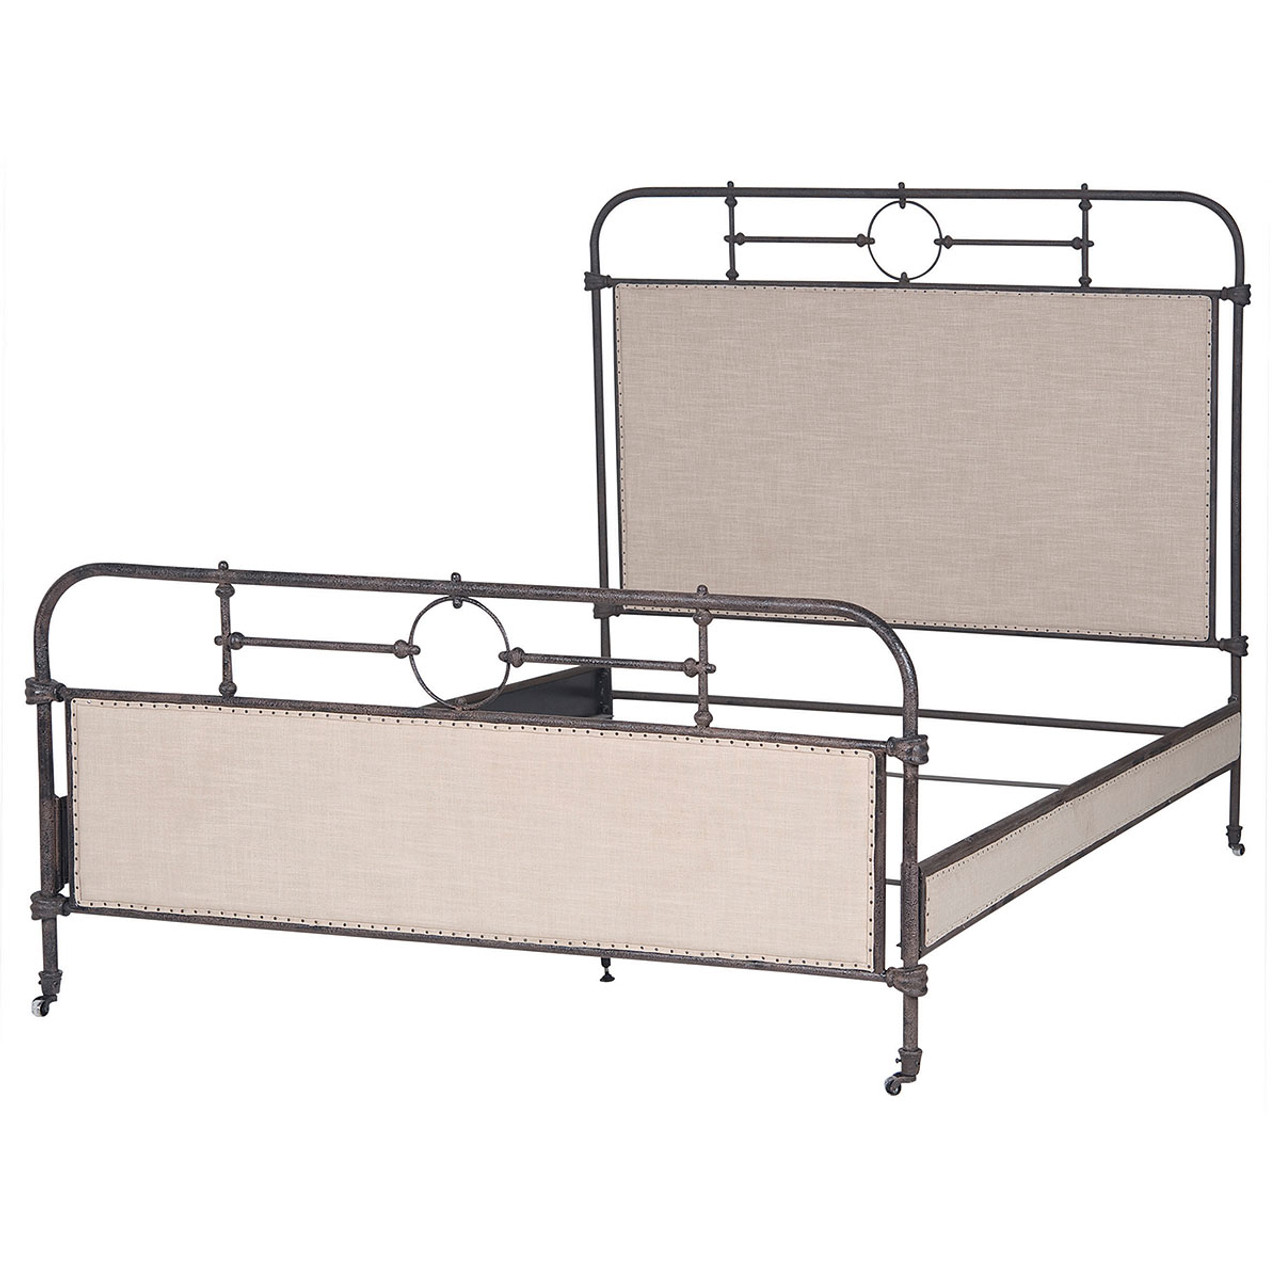 18th Century French Campaign Metal King Bed Frame | Zin Home